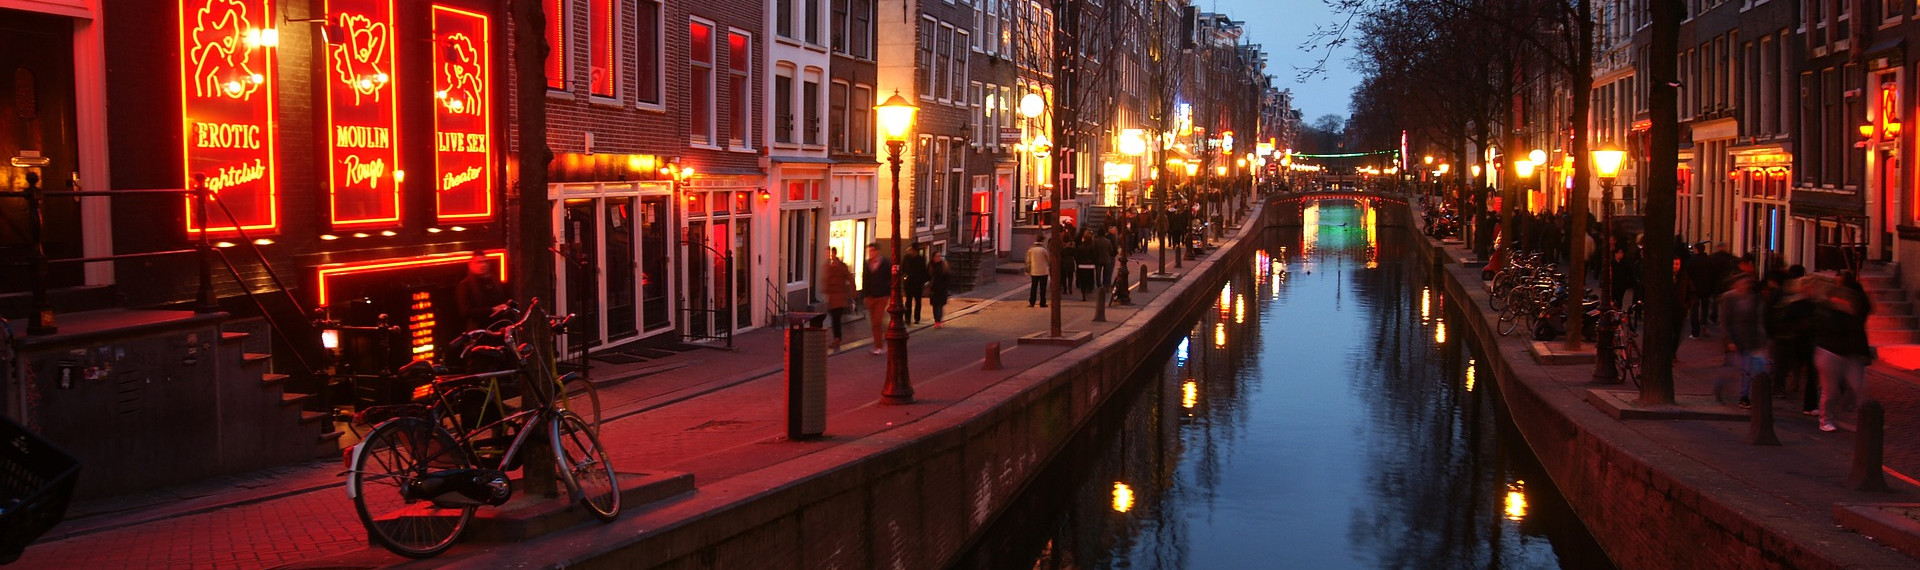 Red Light District Pub Crawl Amsterdam